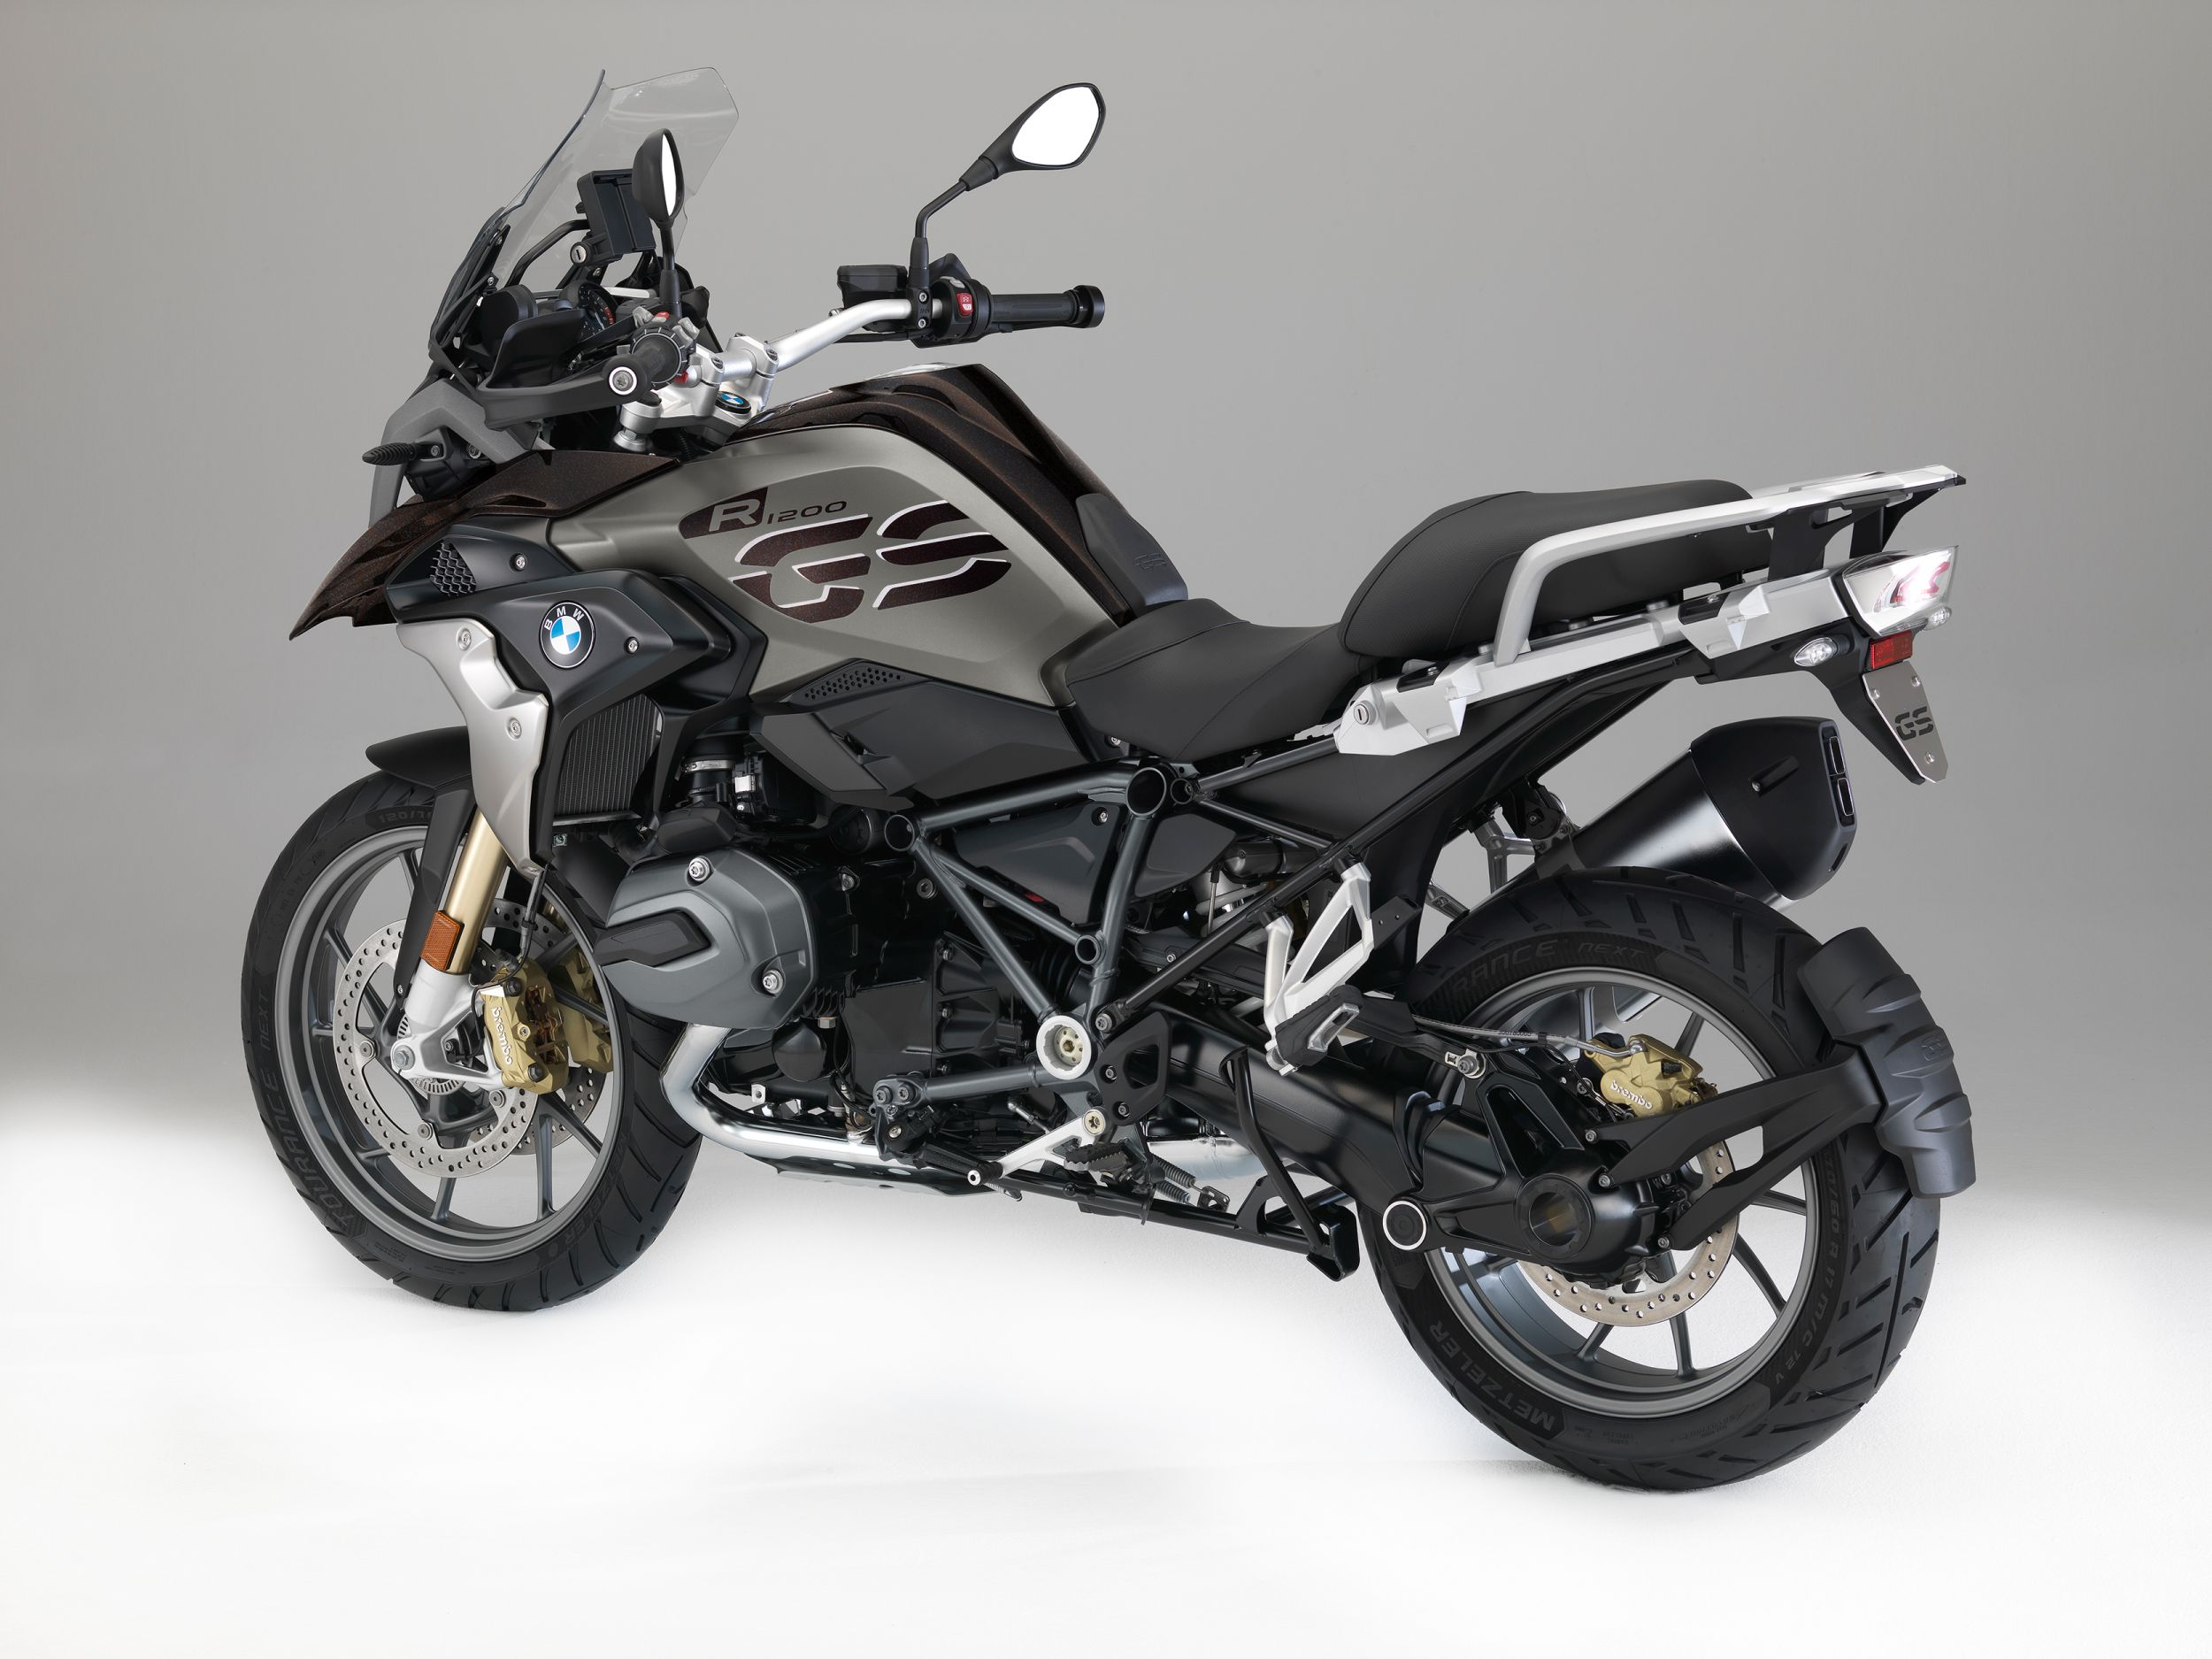 bmw r 1200 gs test gebrauchte bilder technische daten. Black Bedroom Furniture Sets. Home Design Ideas